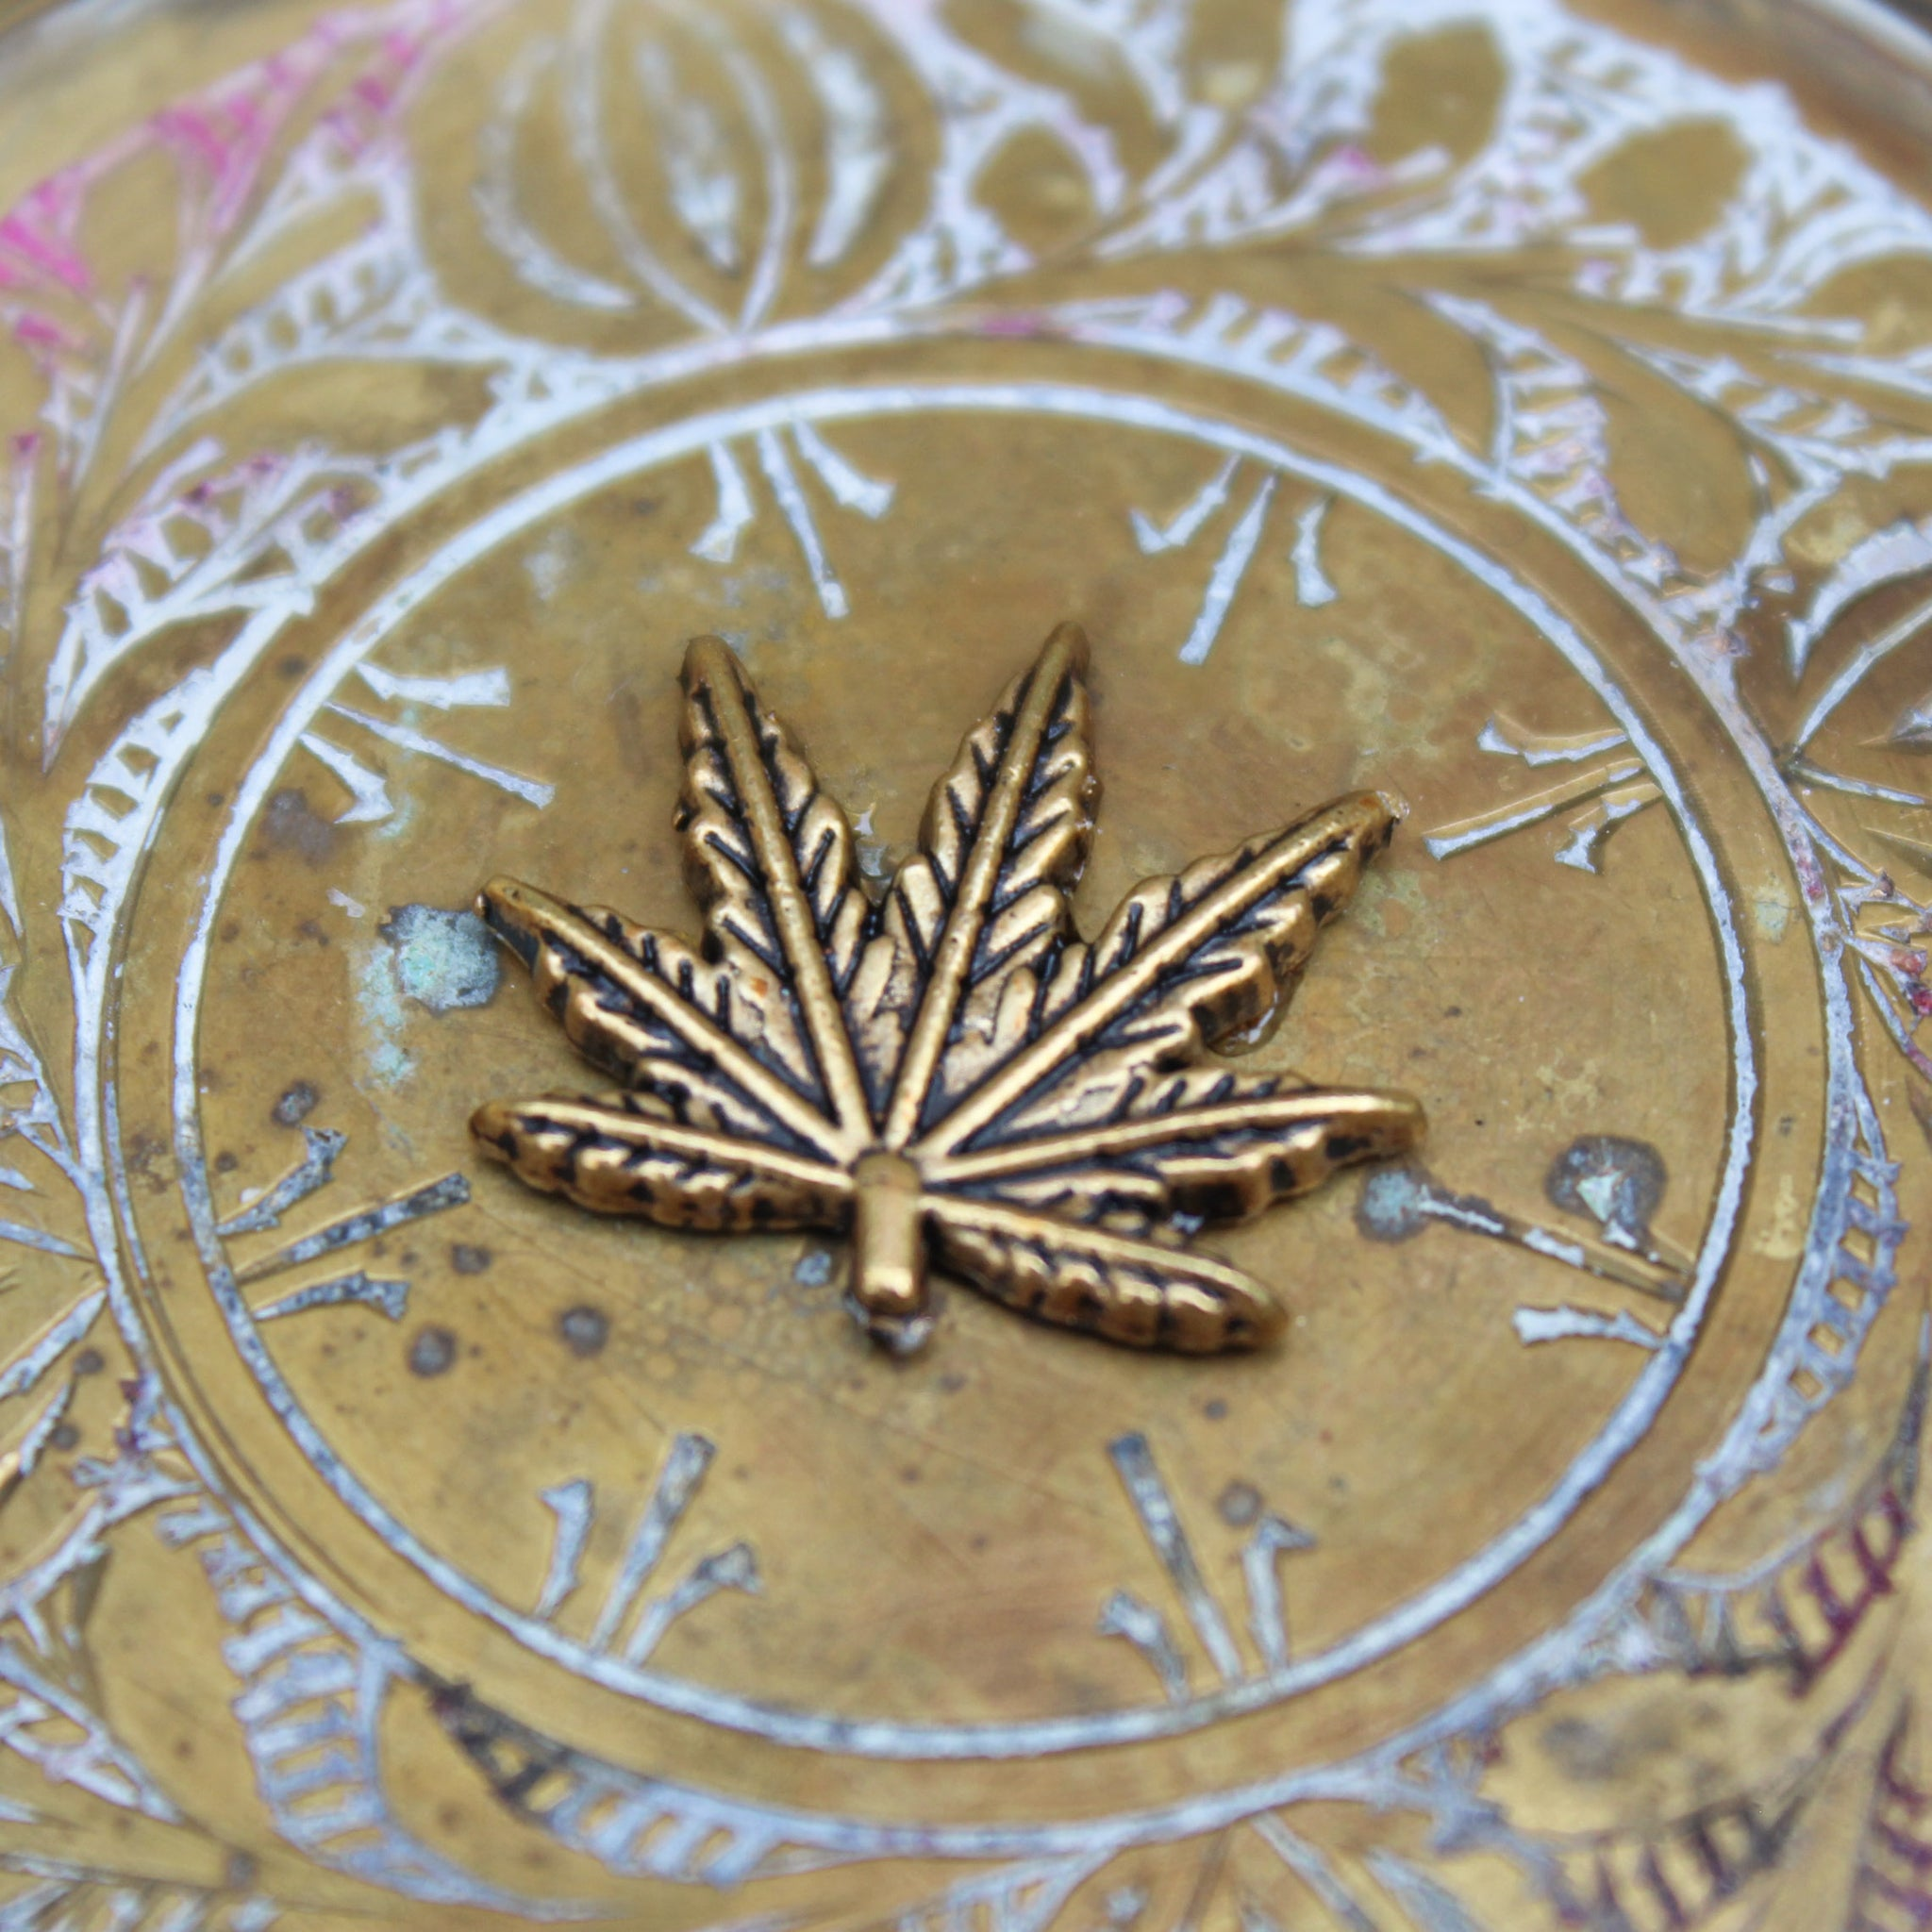 Mini Weed Leaf Brass Ashtray - Blunted Objects